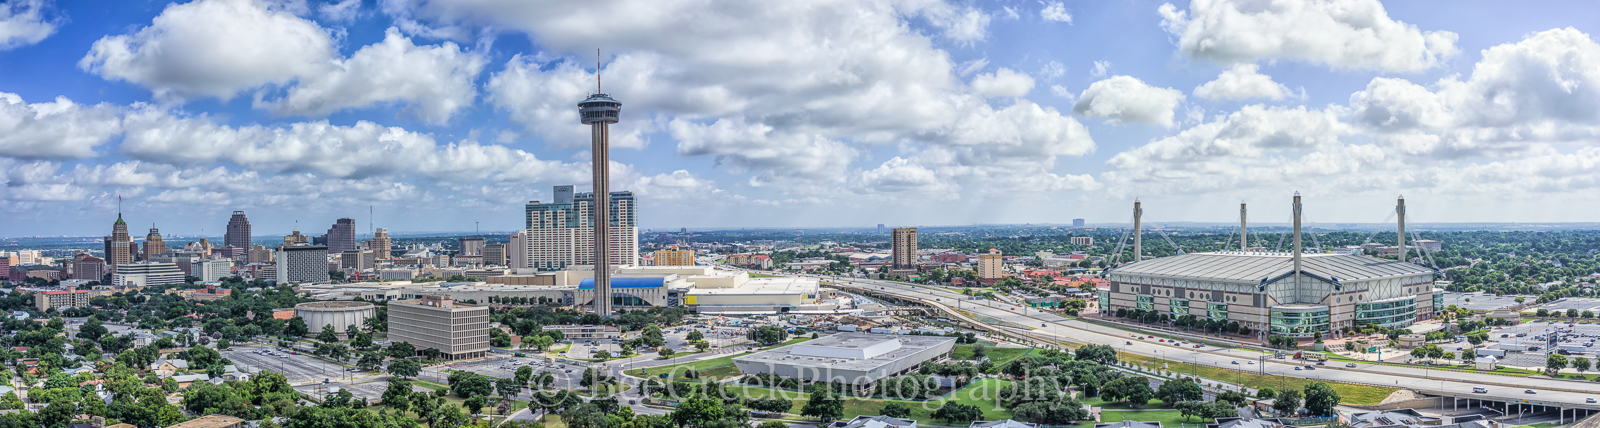 Alamo Dome, Grand Hyatt, Marriot, San Antonio, Tower Life high-rise, Tower of Americas, UT SA, aerial, bank of america, city, cityscape, cityscapes, downtown, skyline, skylines, aerial, drone,  urban,, photo